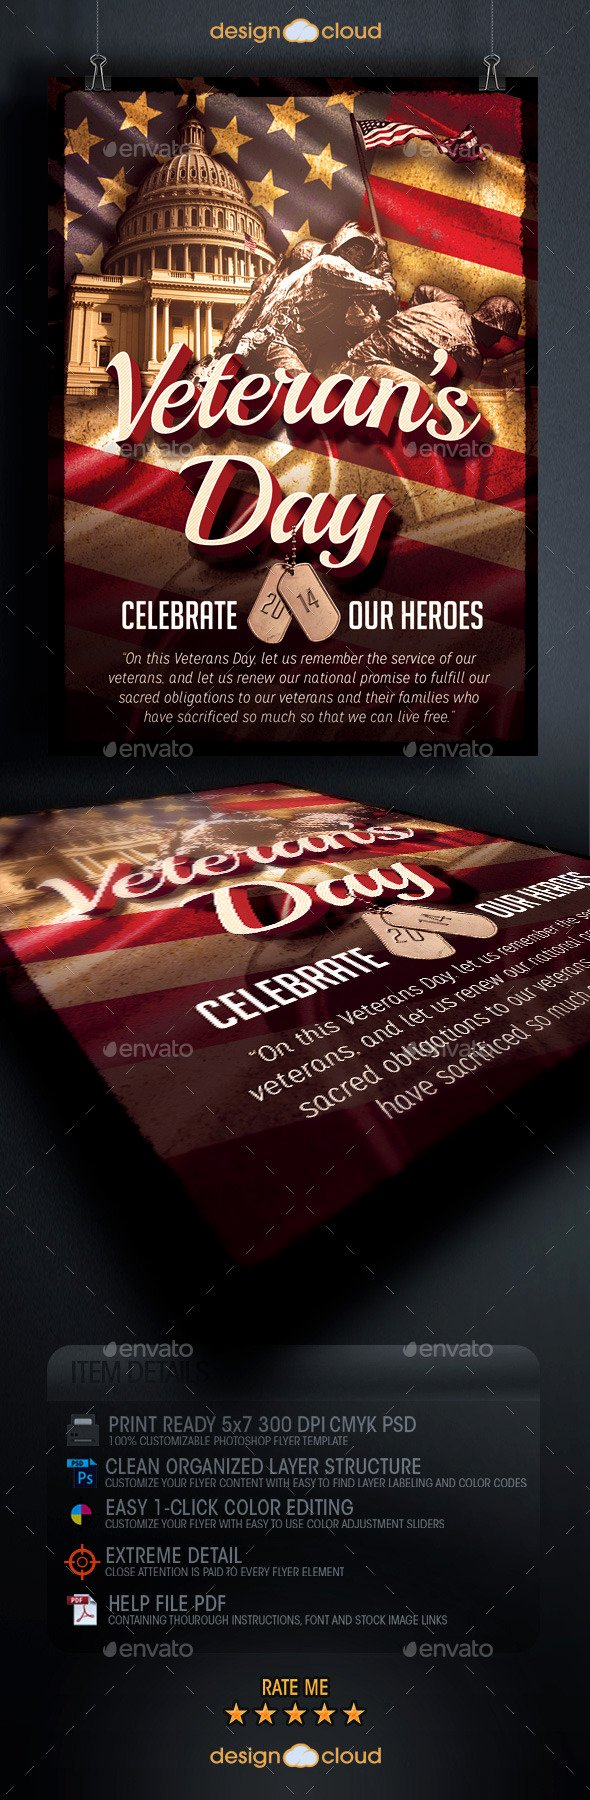 Veterans Day Flyer Templates Free Lovely Veteran S Day Flyer Template by Design Cloud